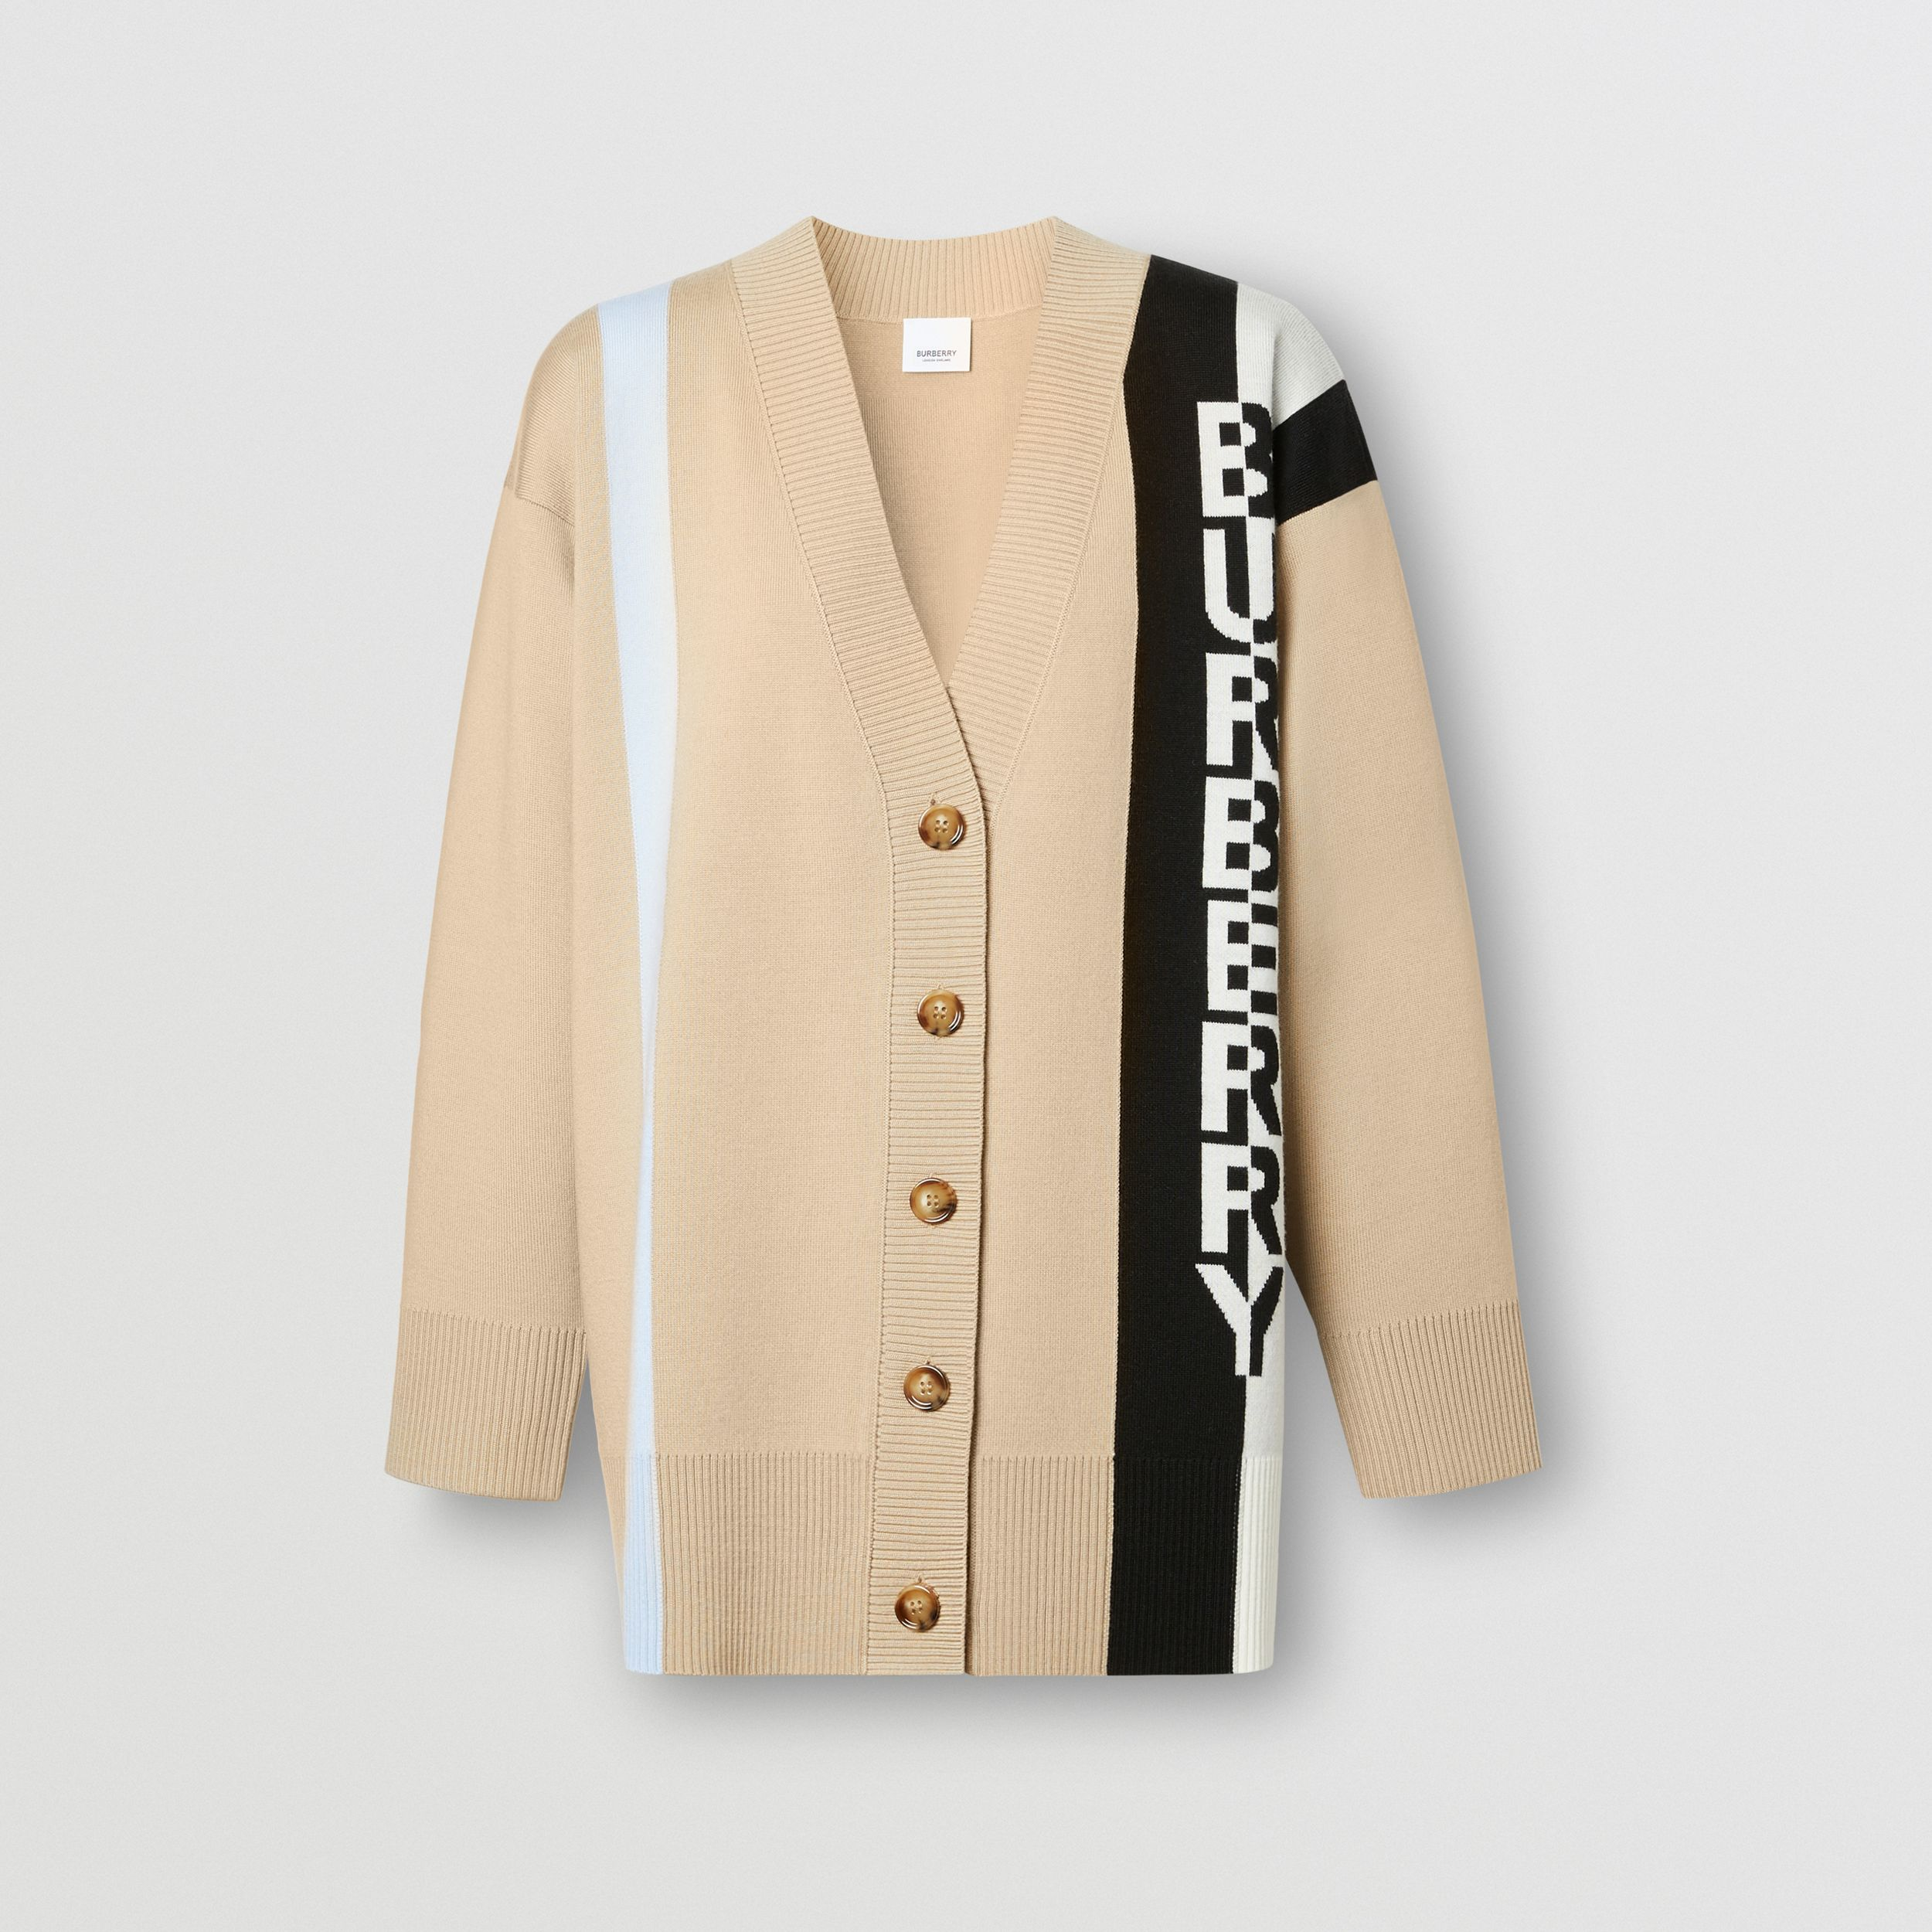 Logo Merino Wool Blend Jacquard Cardigan in Soft Fawn - Women | Burberry - 4